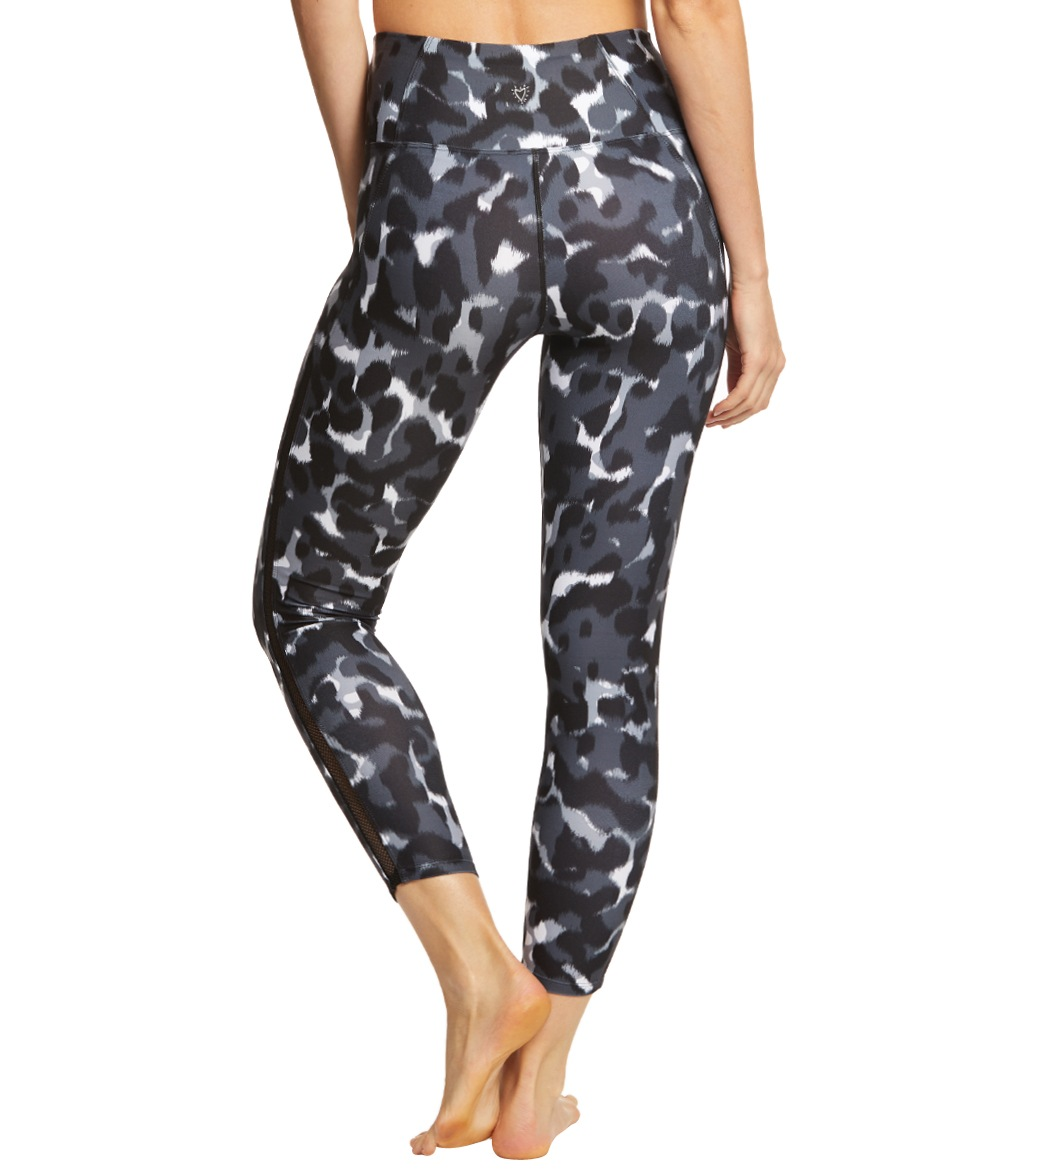 37aeb0b716983 Betsey Johnson Performance Printed Mesh Trim 7/8 Yoga Leggings at ...